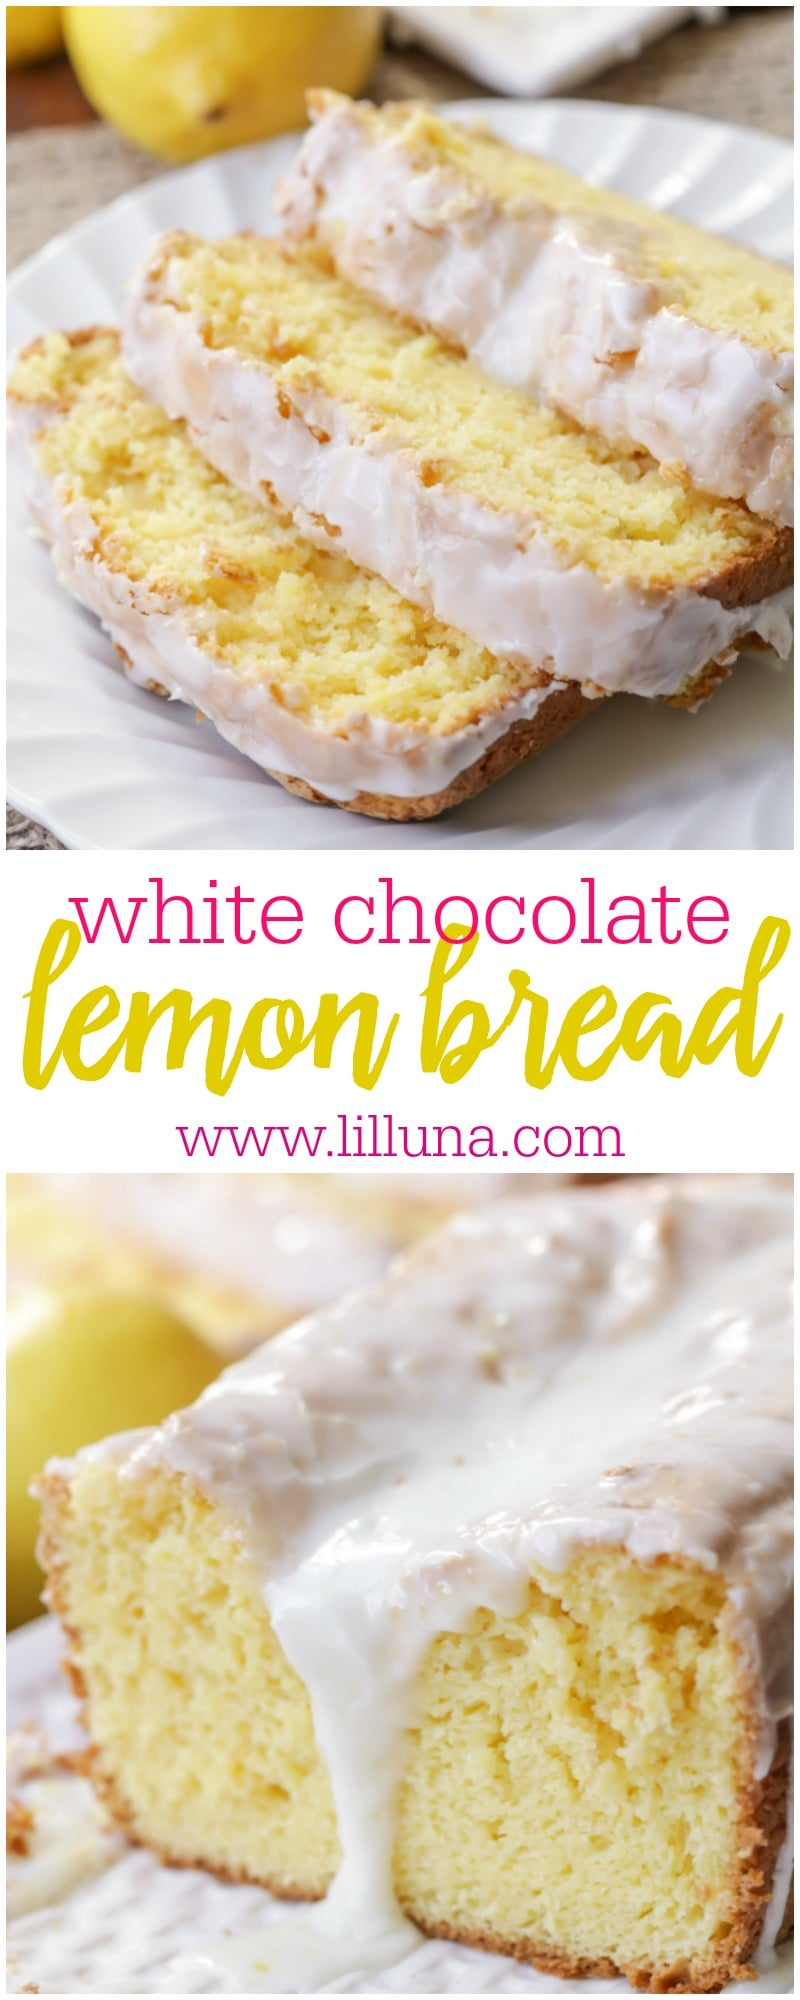 White Chocolate Lemon Bread recipe - so soft, so flavorful and topped with a delicious glaze that everyone loves.